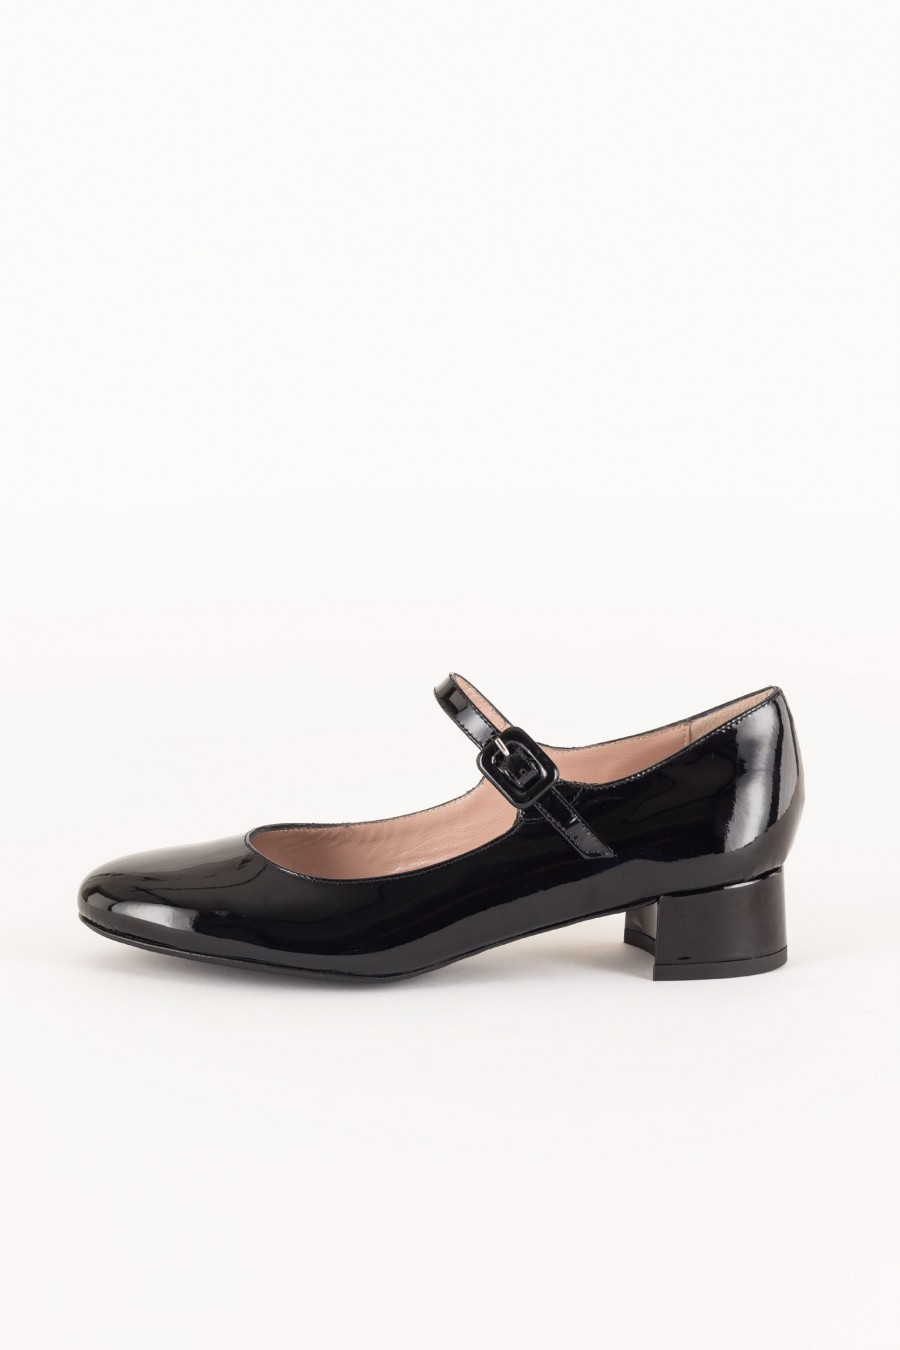 Black patent Mary Jane with covered buckle